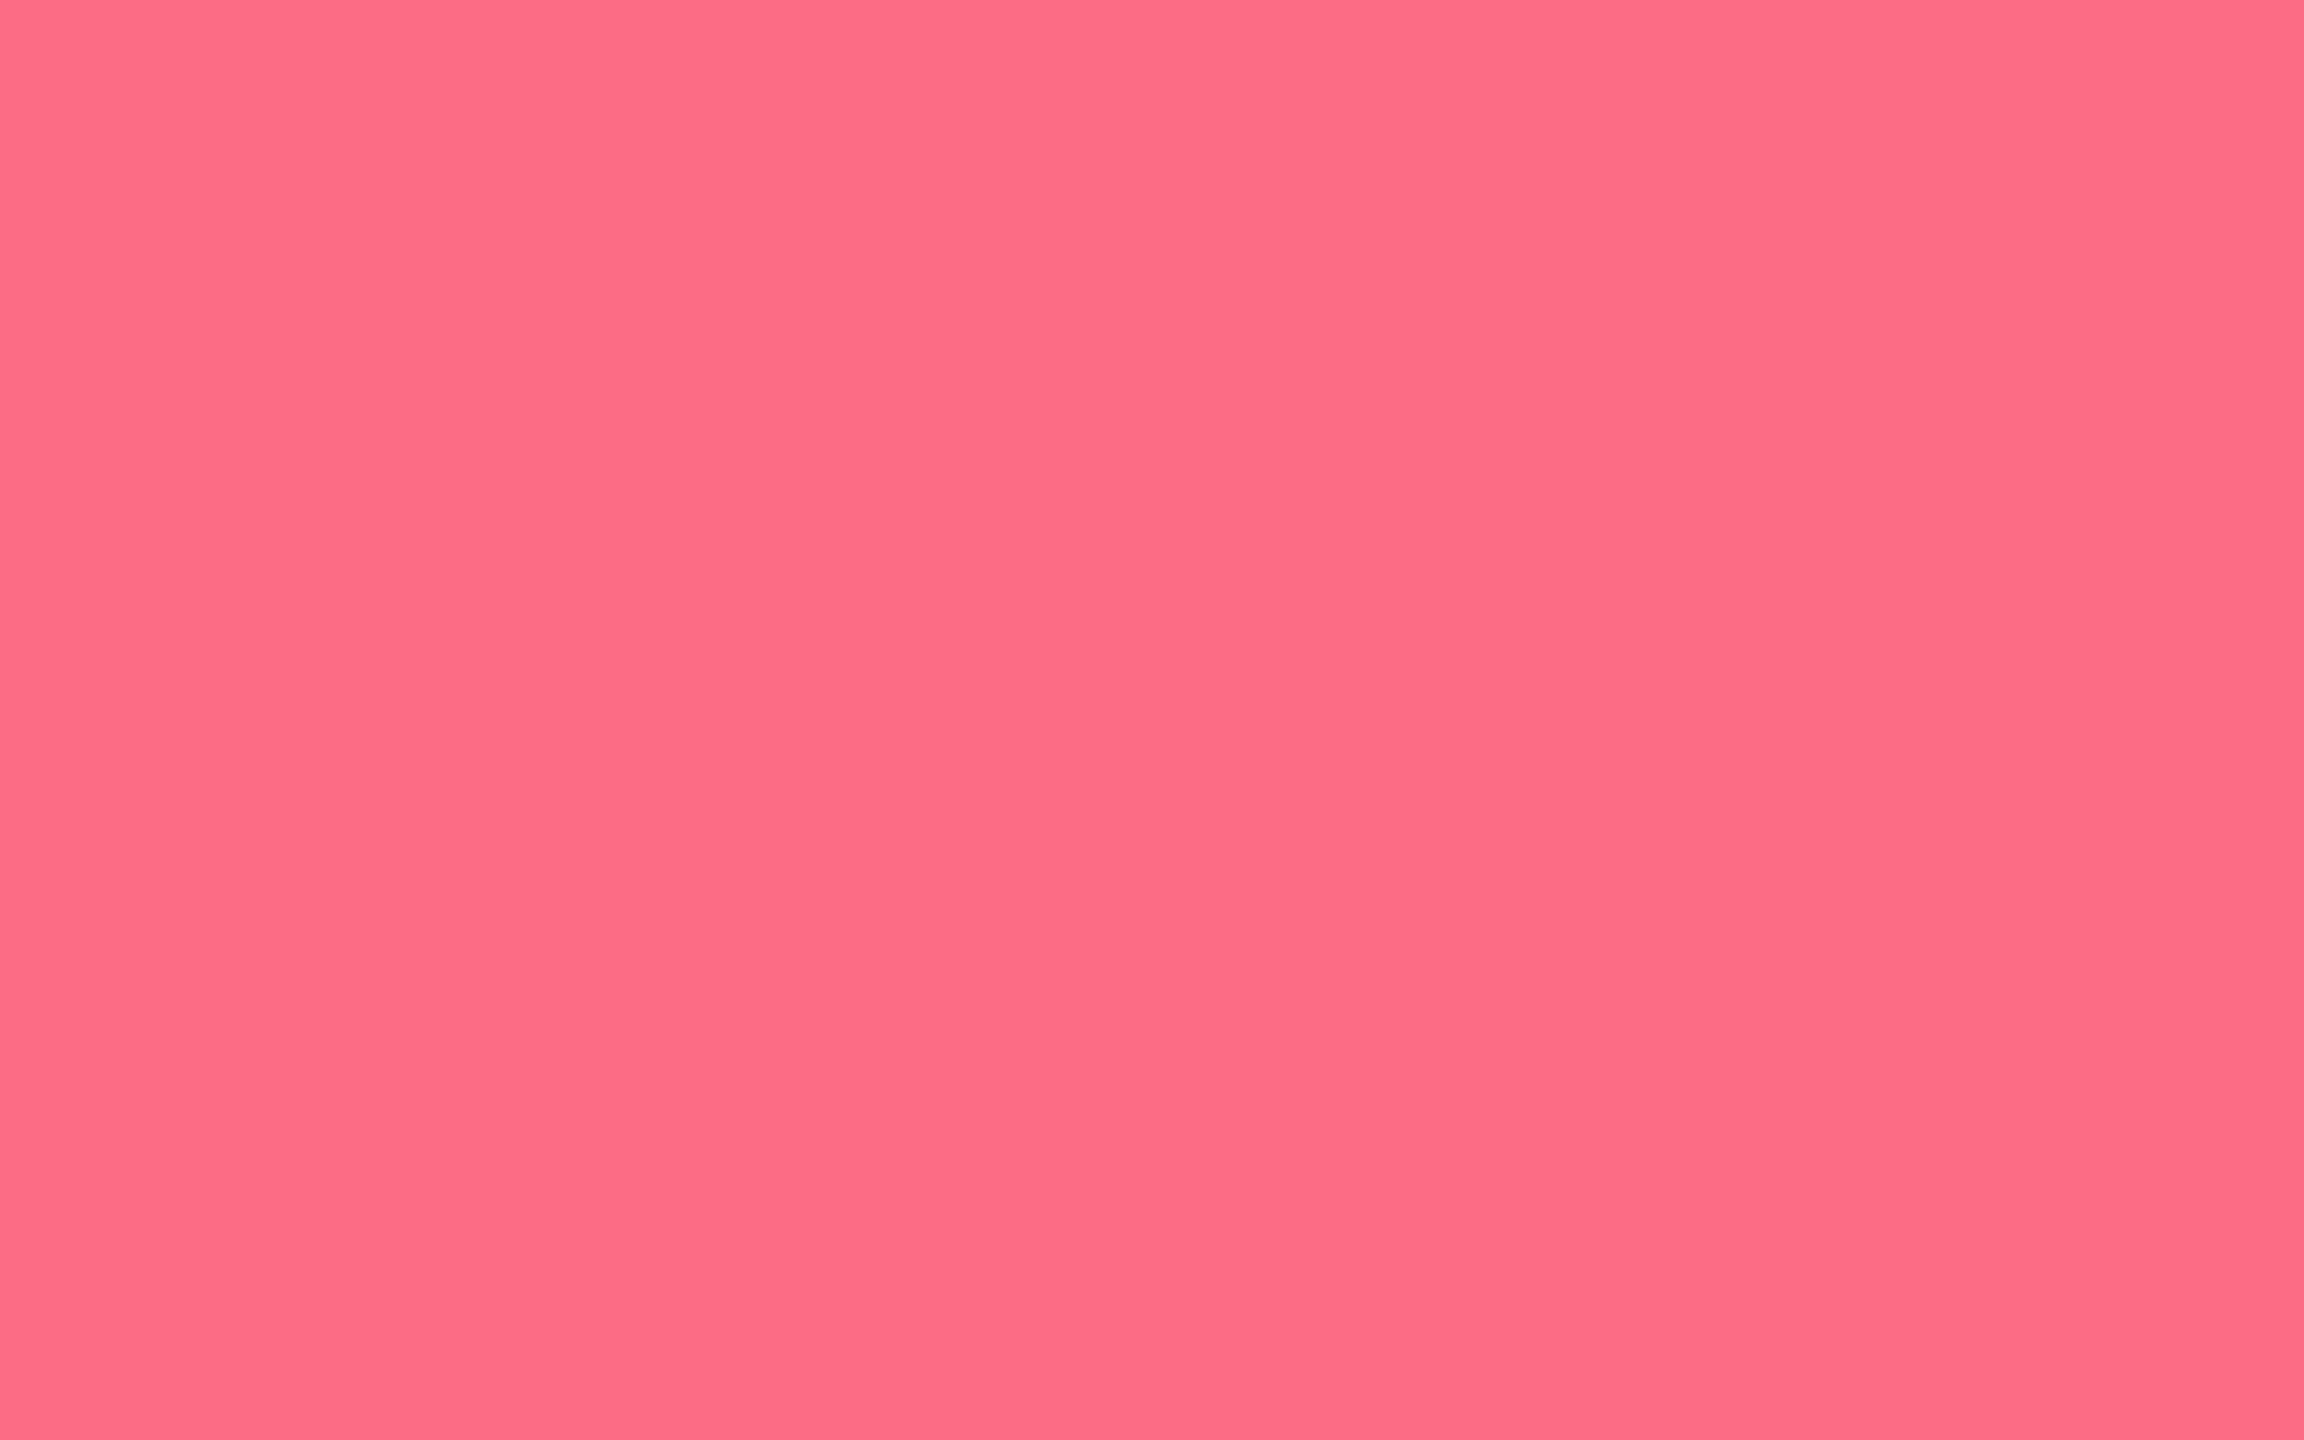 2304x1440 Wild Watermelon Solid Color Background